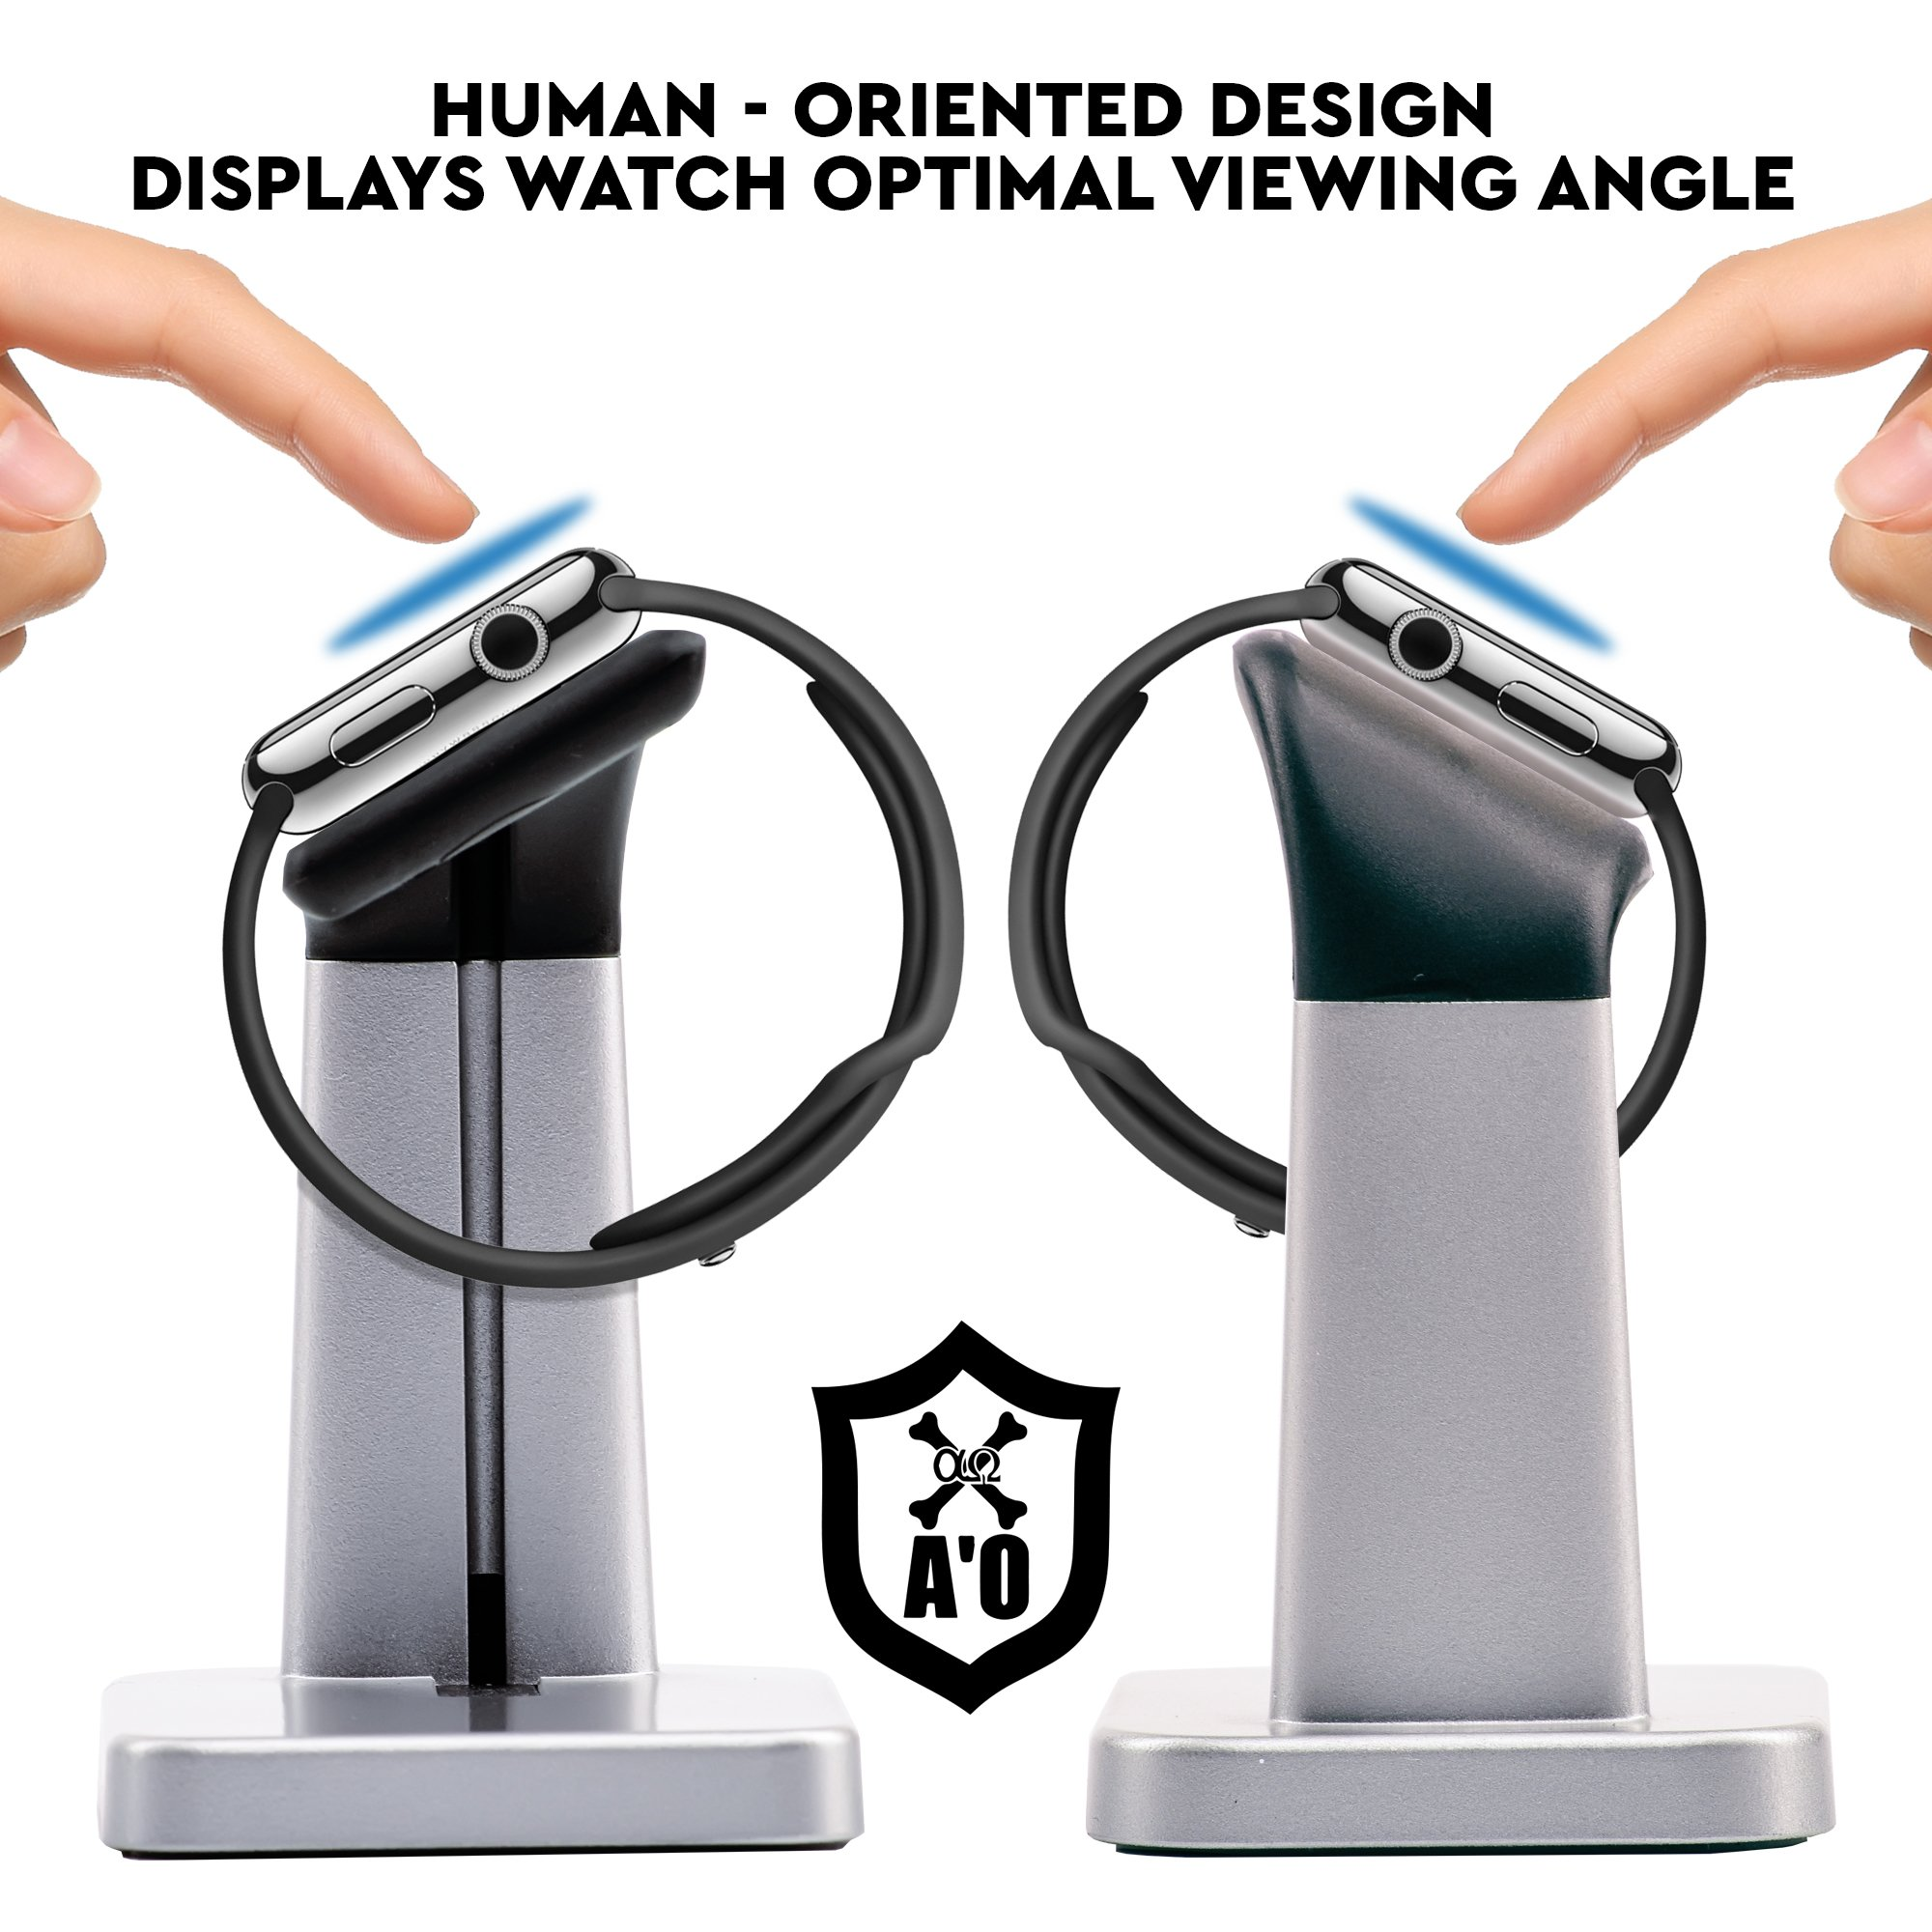 A'O Watch Charger Station Compatible with Apple Watch Charging Dock,iWatch holder stand for smart watches series 38/42mm. Silver black color station, cable not included. Antislip Platform. by A'O (Image #4)